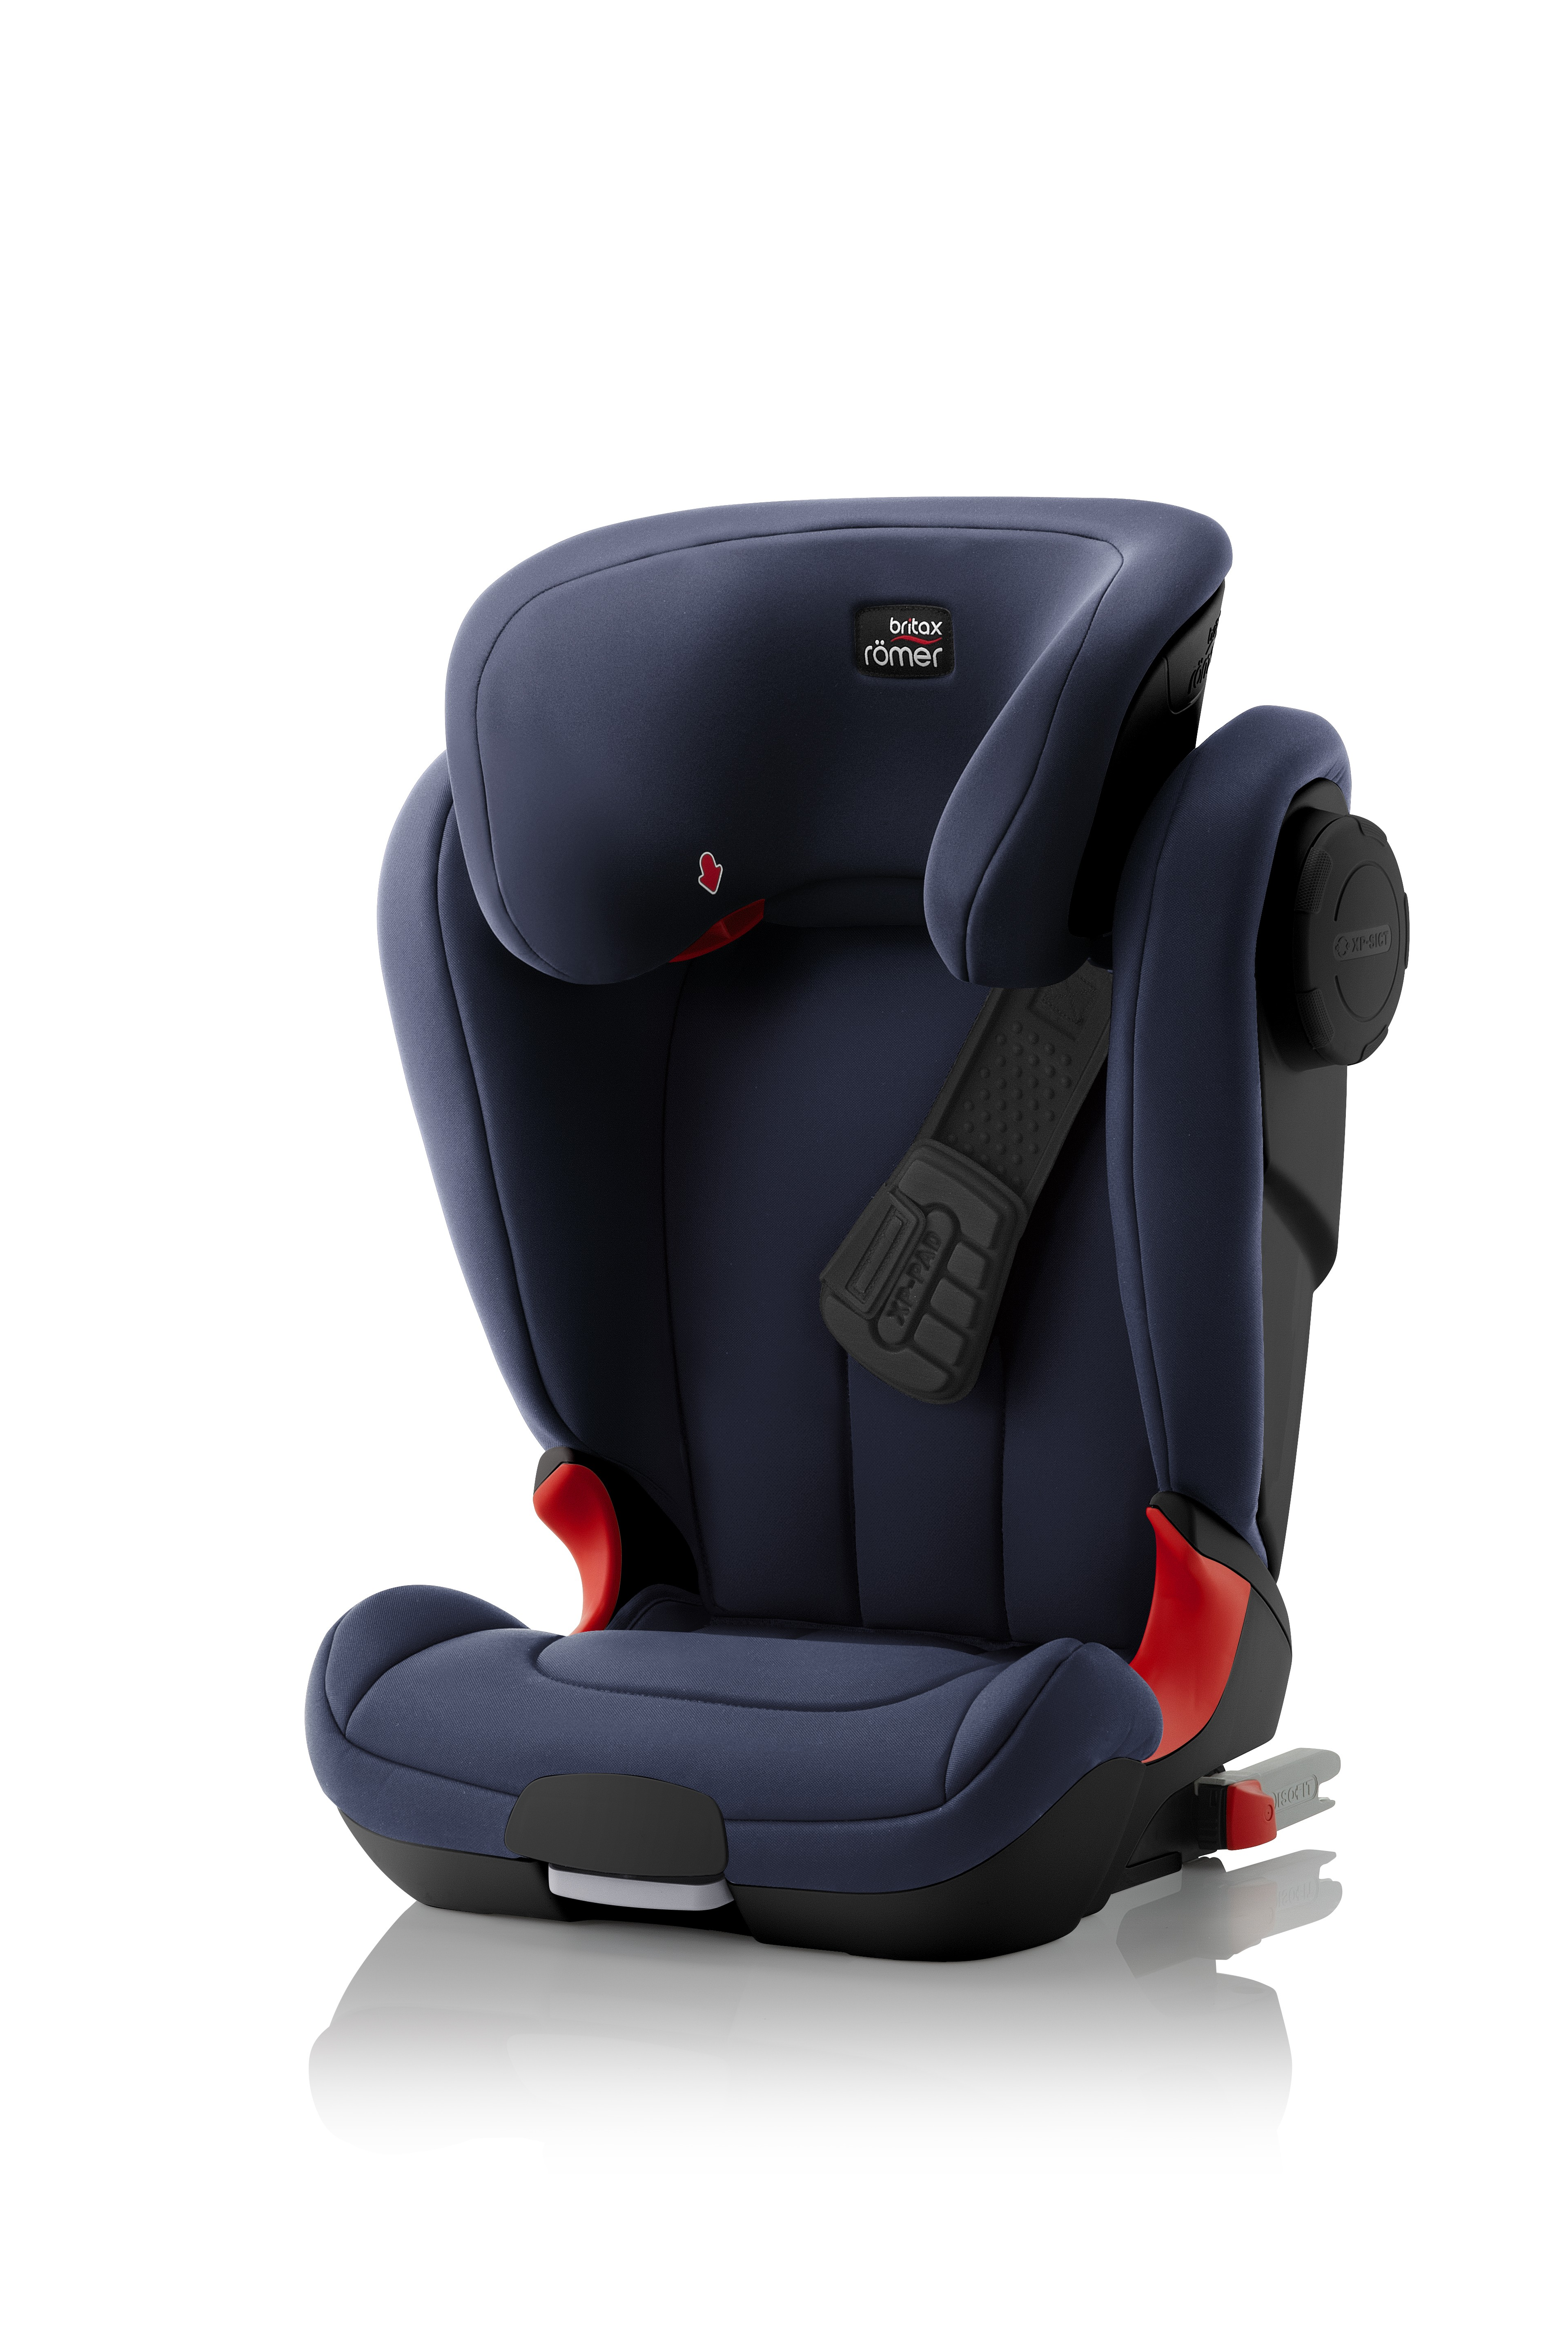 Автокресло Britax Roemer Kidfix XP SICT Black Series Moonlight Blue Trendline, цвет: синийBritax R?mer <br>Автокресло Britax Roemer Kidfix XP SICT Black Series Moonlight Blue Trendline, цвет: синий<br>